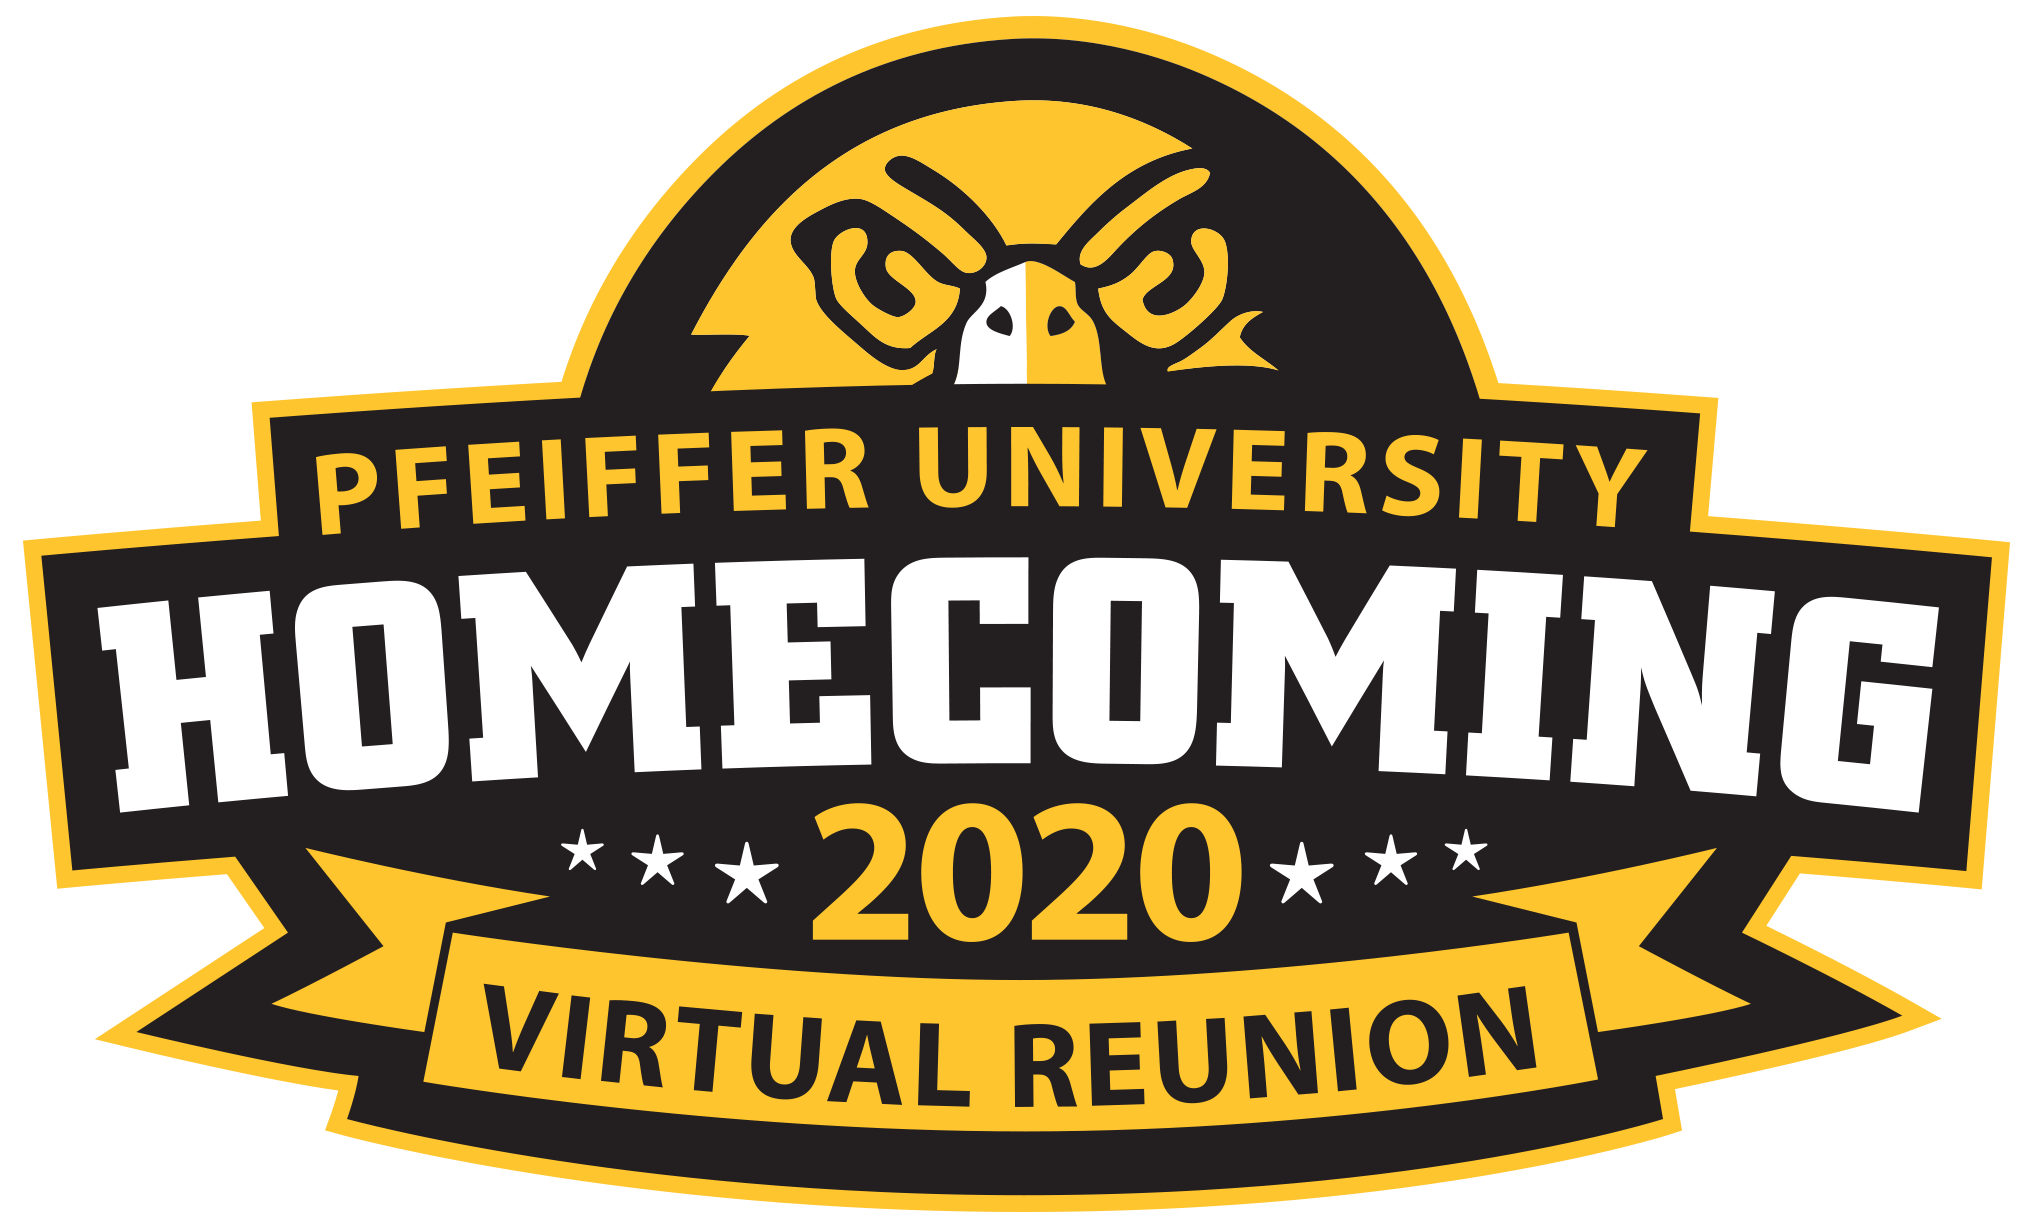 Homecoming 2020 virtual logo